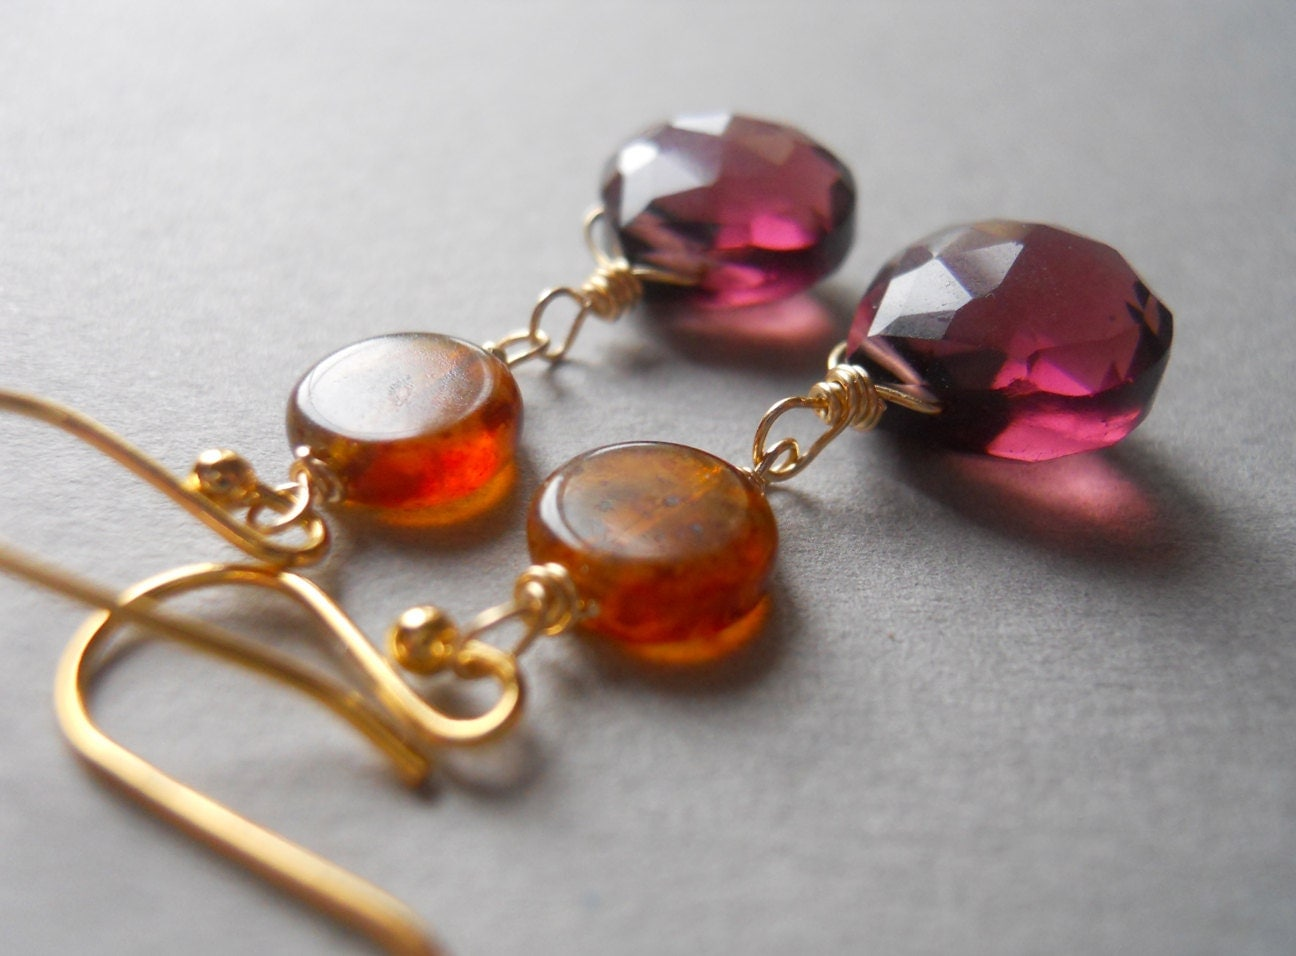 Sangria plum quartz and Czech glass earrings - $48.00 USD